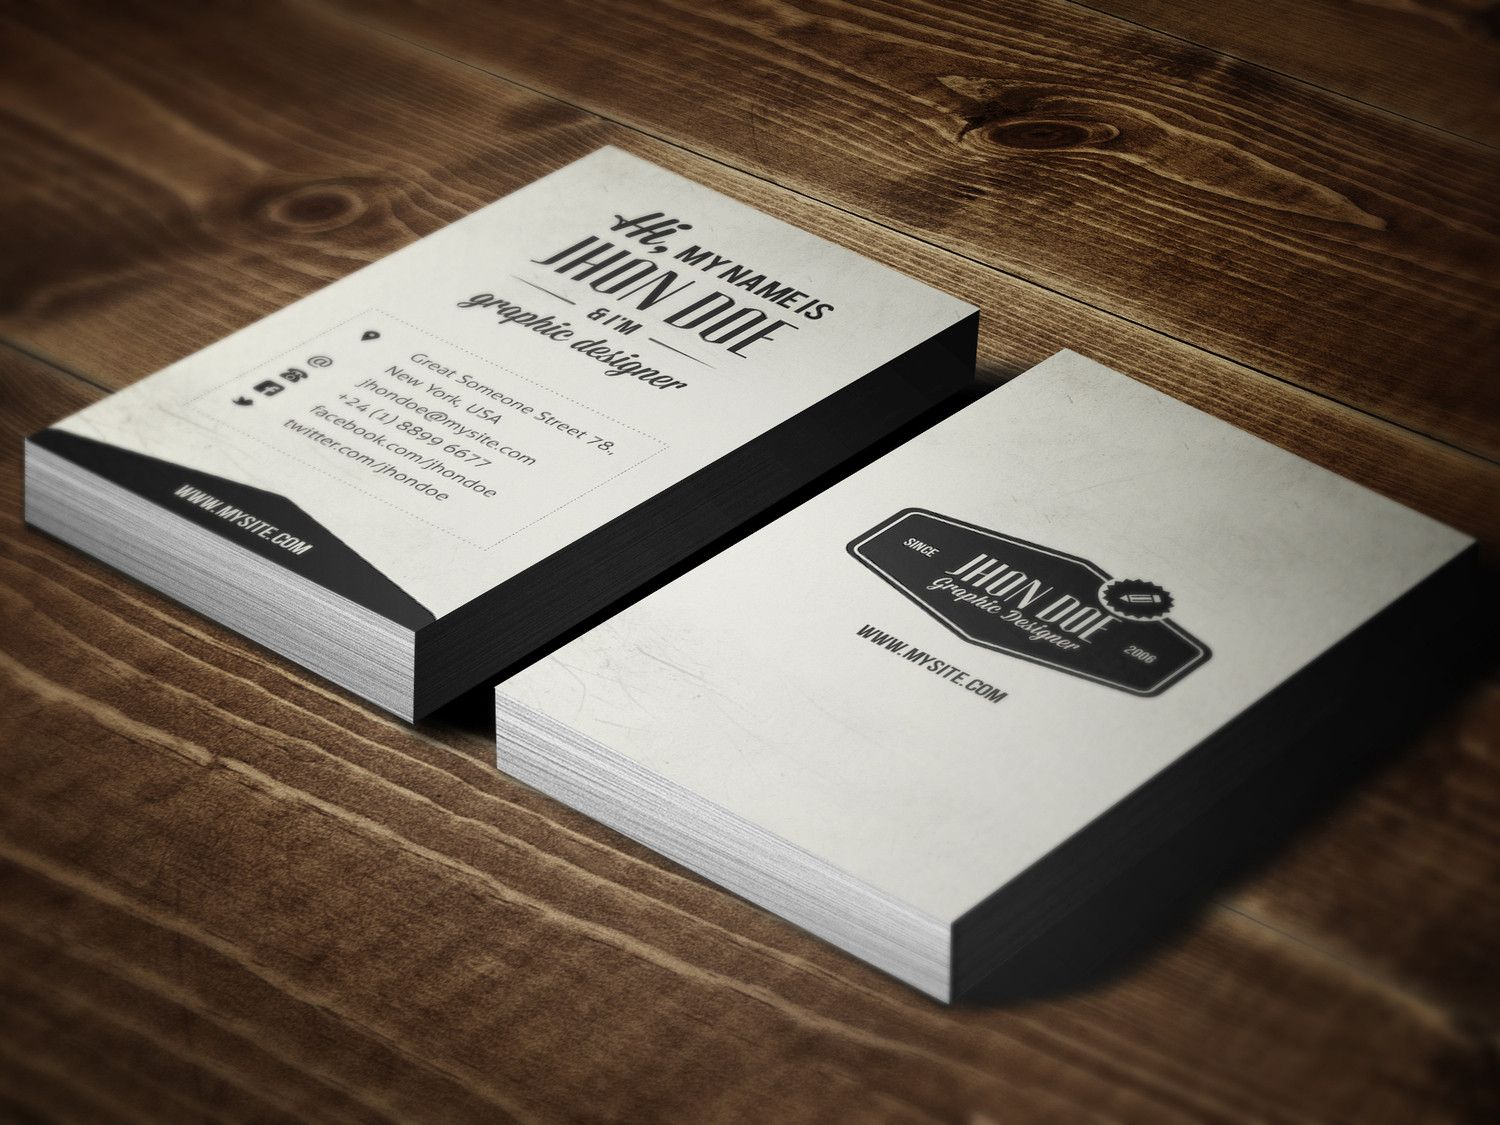 17 Best images about Business Card on Pinterest | Graphics ...